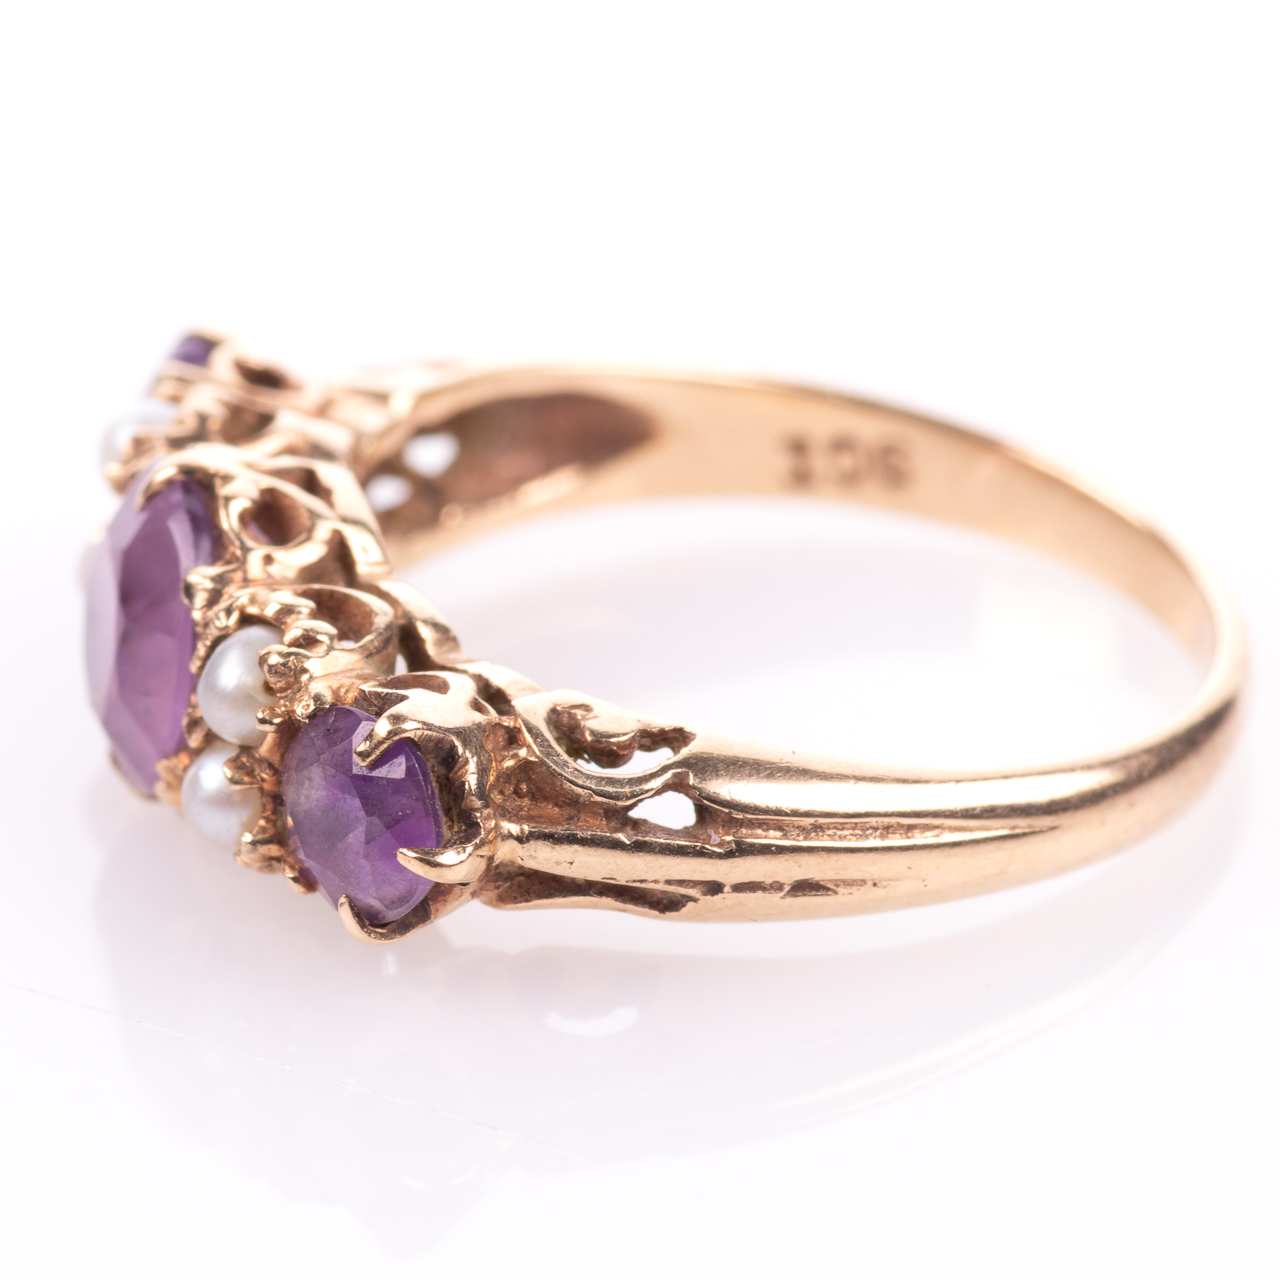 9ct Gold 2.10ct Amethyst & Pearl Ring - Image 4 of 7